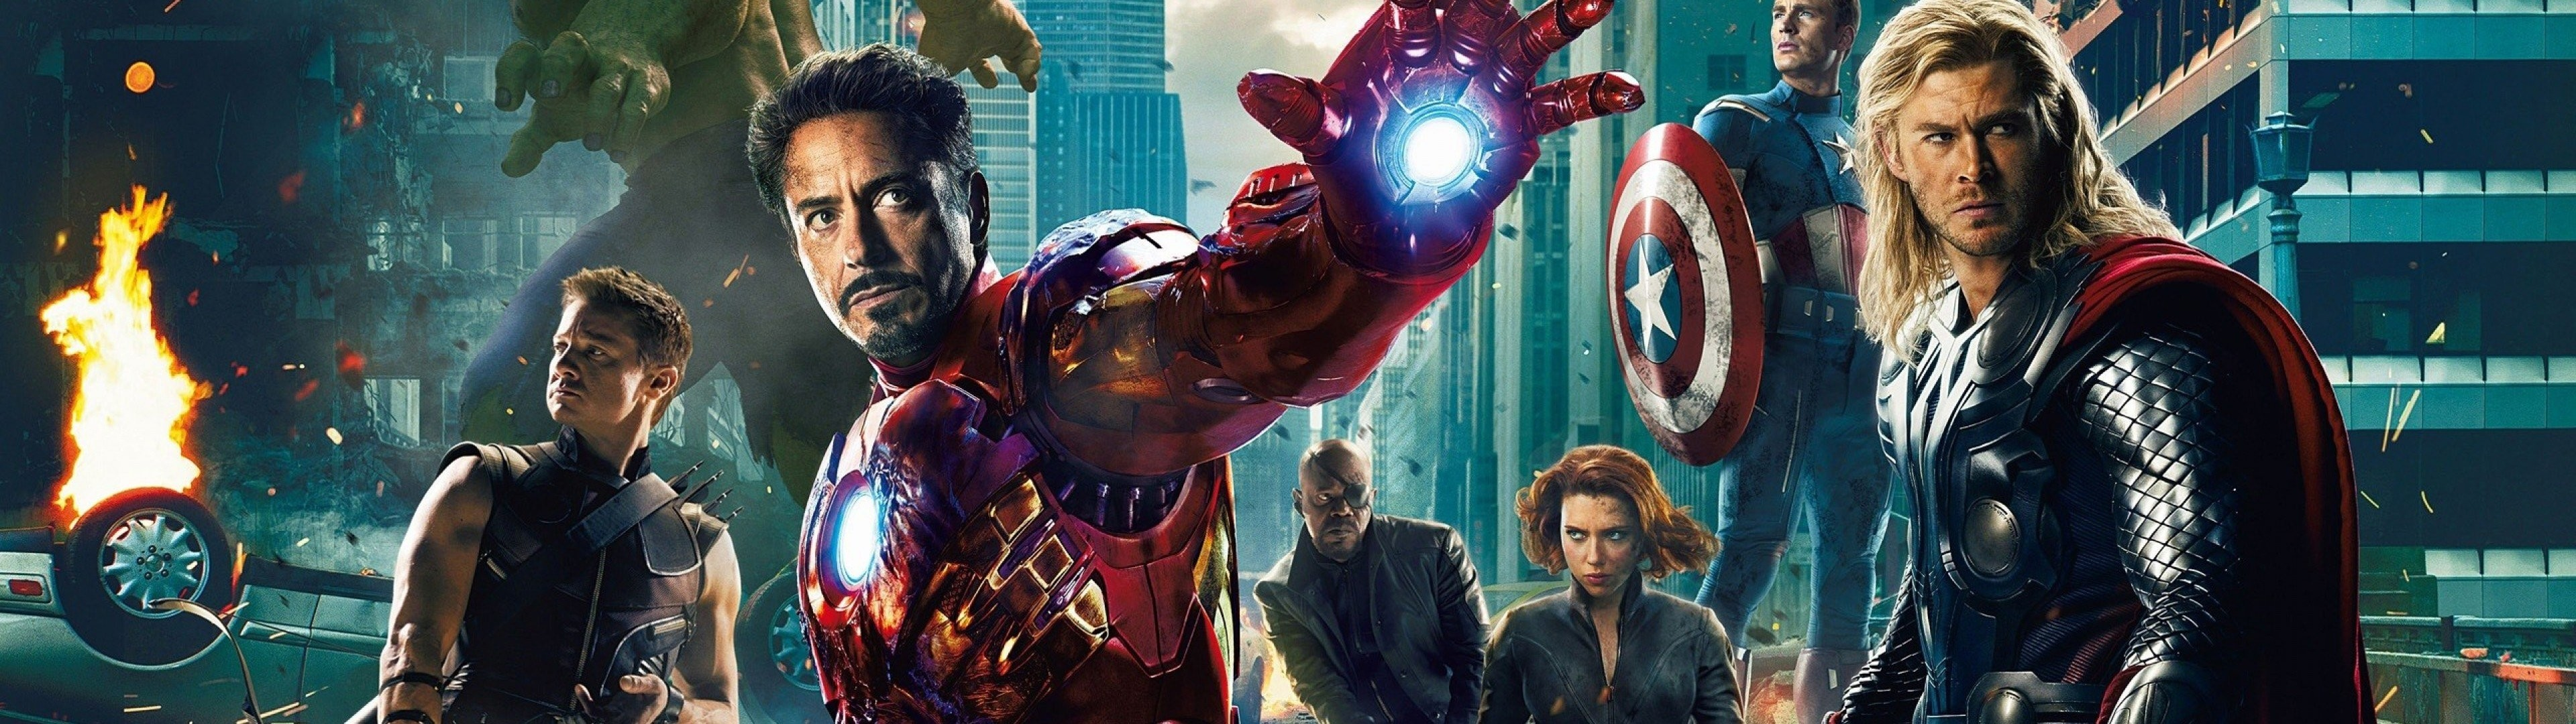 Marvel Dual Monitor Wallpaper 44 Images